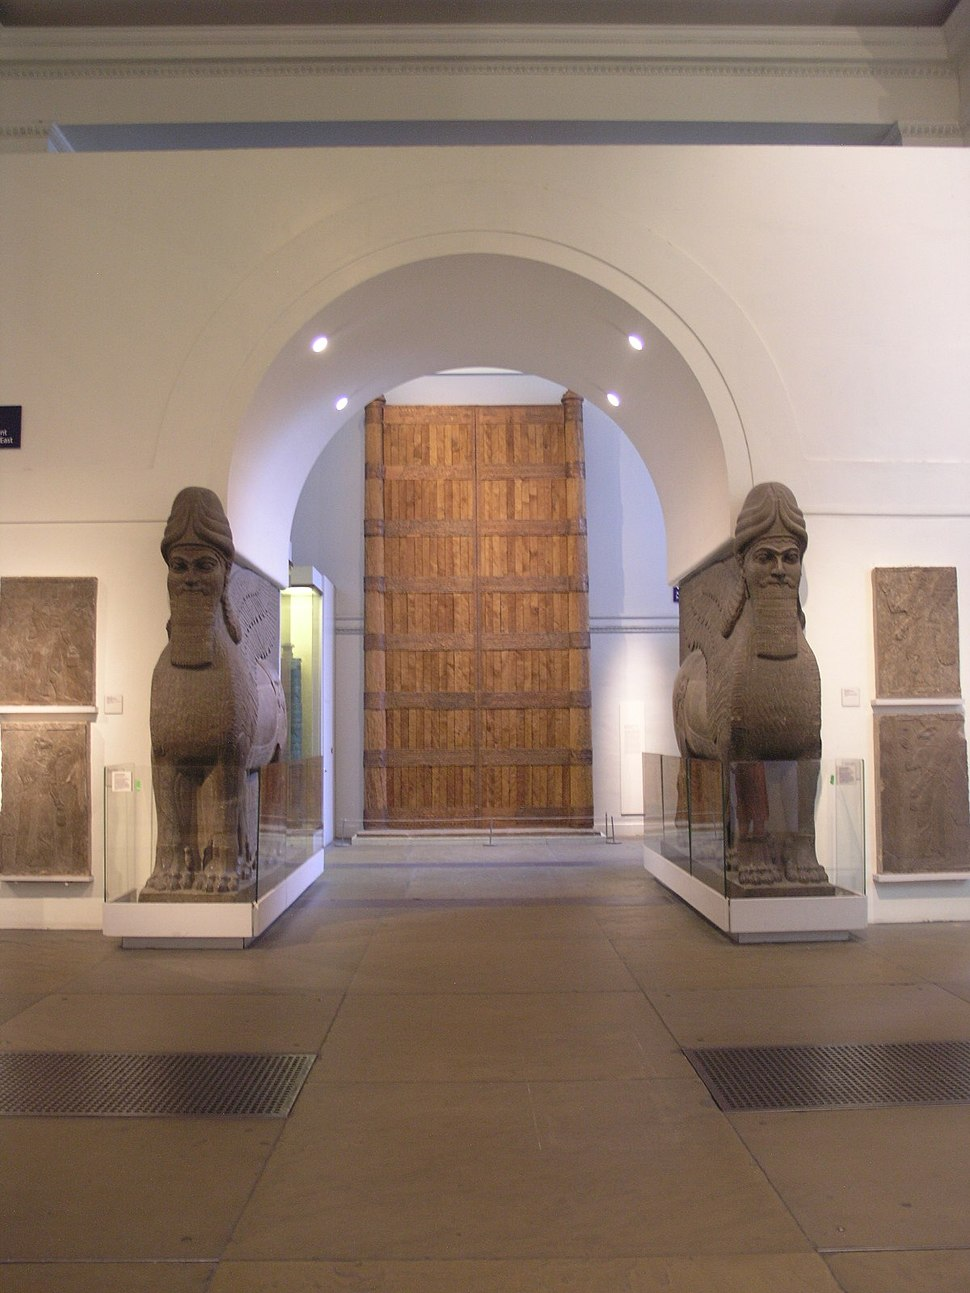 BM; RM6 - ANE, Assyrian Sculpture 14 West Wall (M + N) ~ Assyrian Empire + Lamassu, Gates at Balawat, Relief Panel's & Full Projection.3